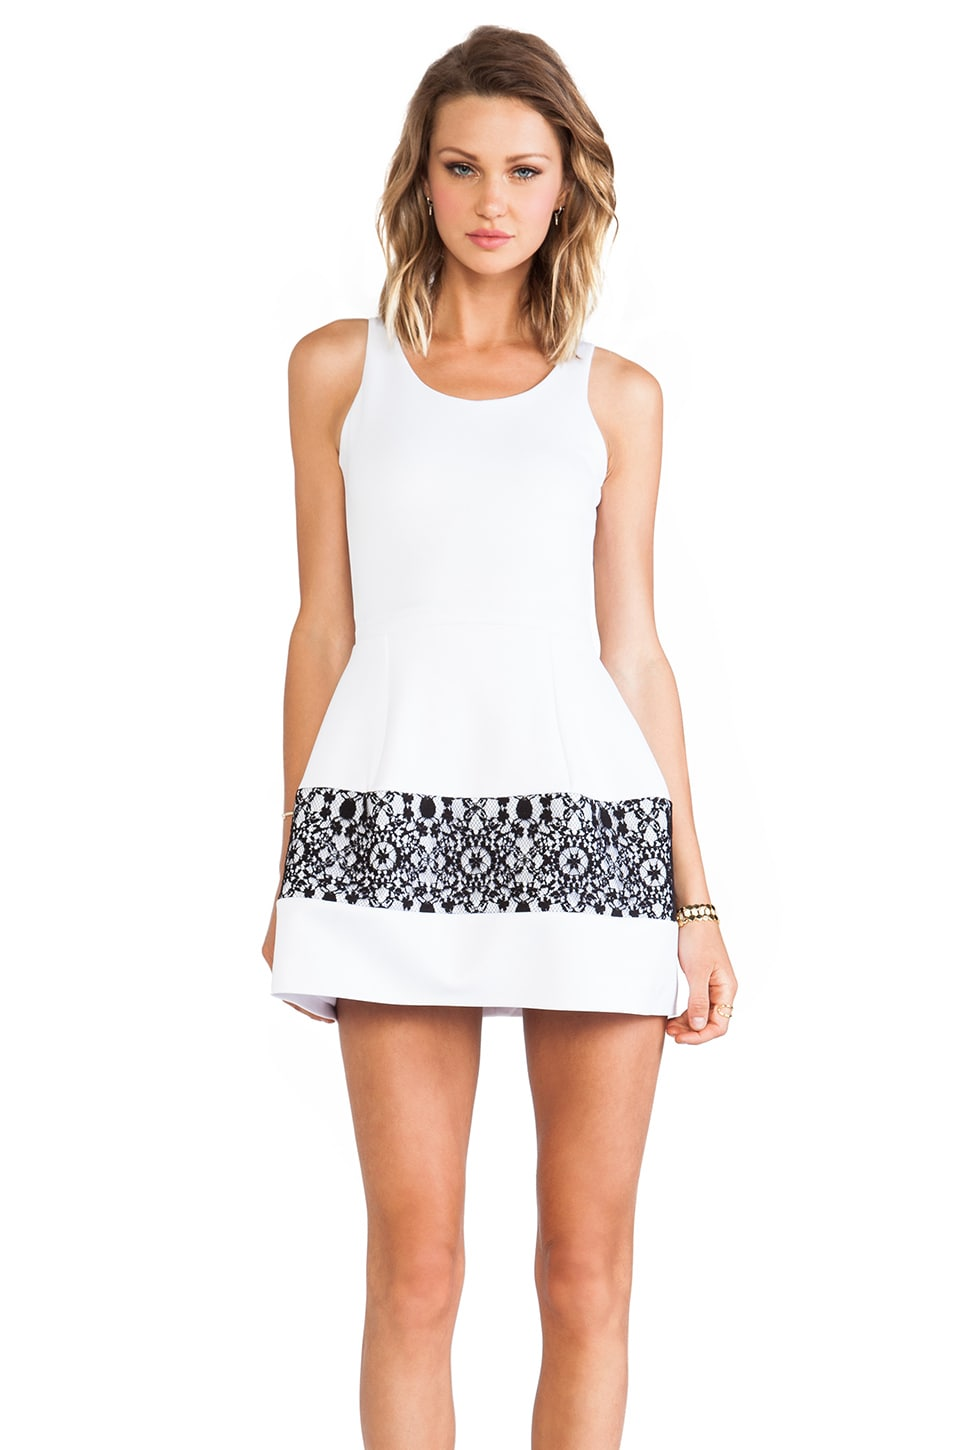 Boulee Marilyn Tank Dress in Black &Ivory Lace